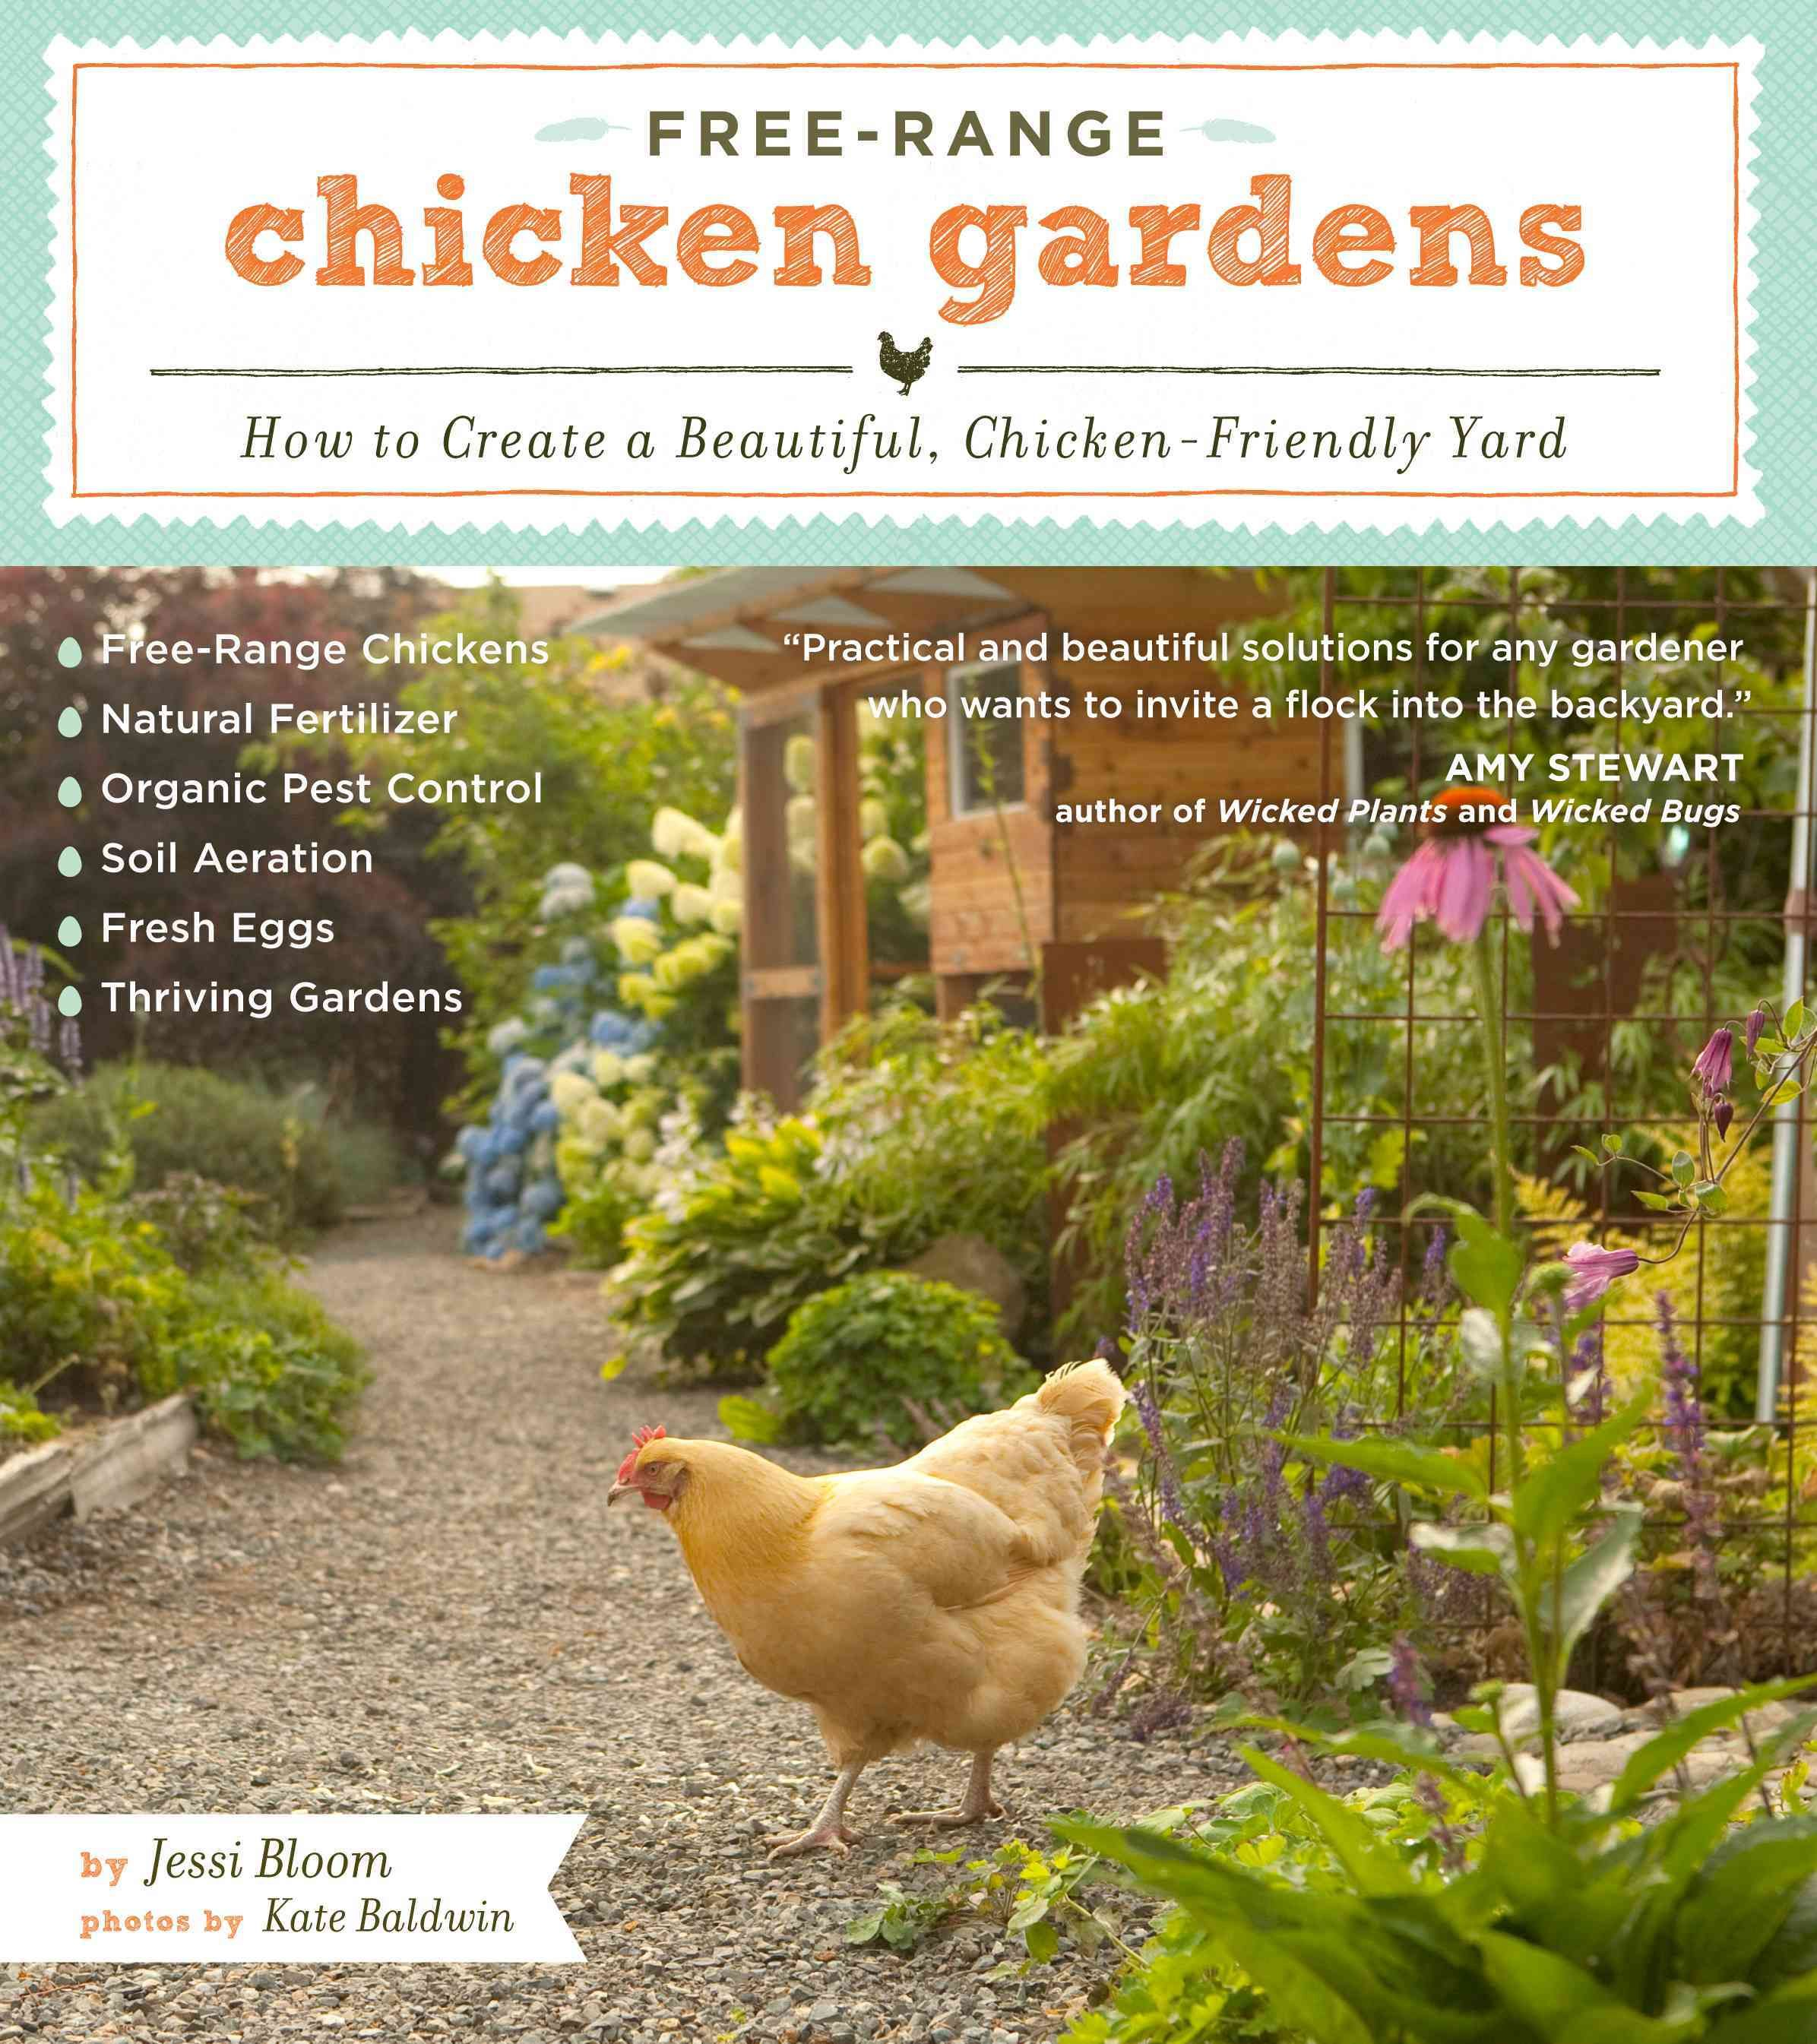 814c994ce84e7528dc501af0e8f7c7a0 - Gardening With Free Range Chickens For Dummies